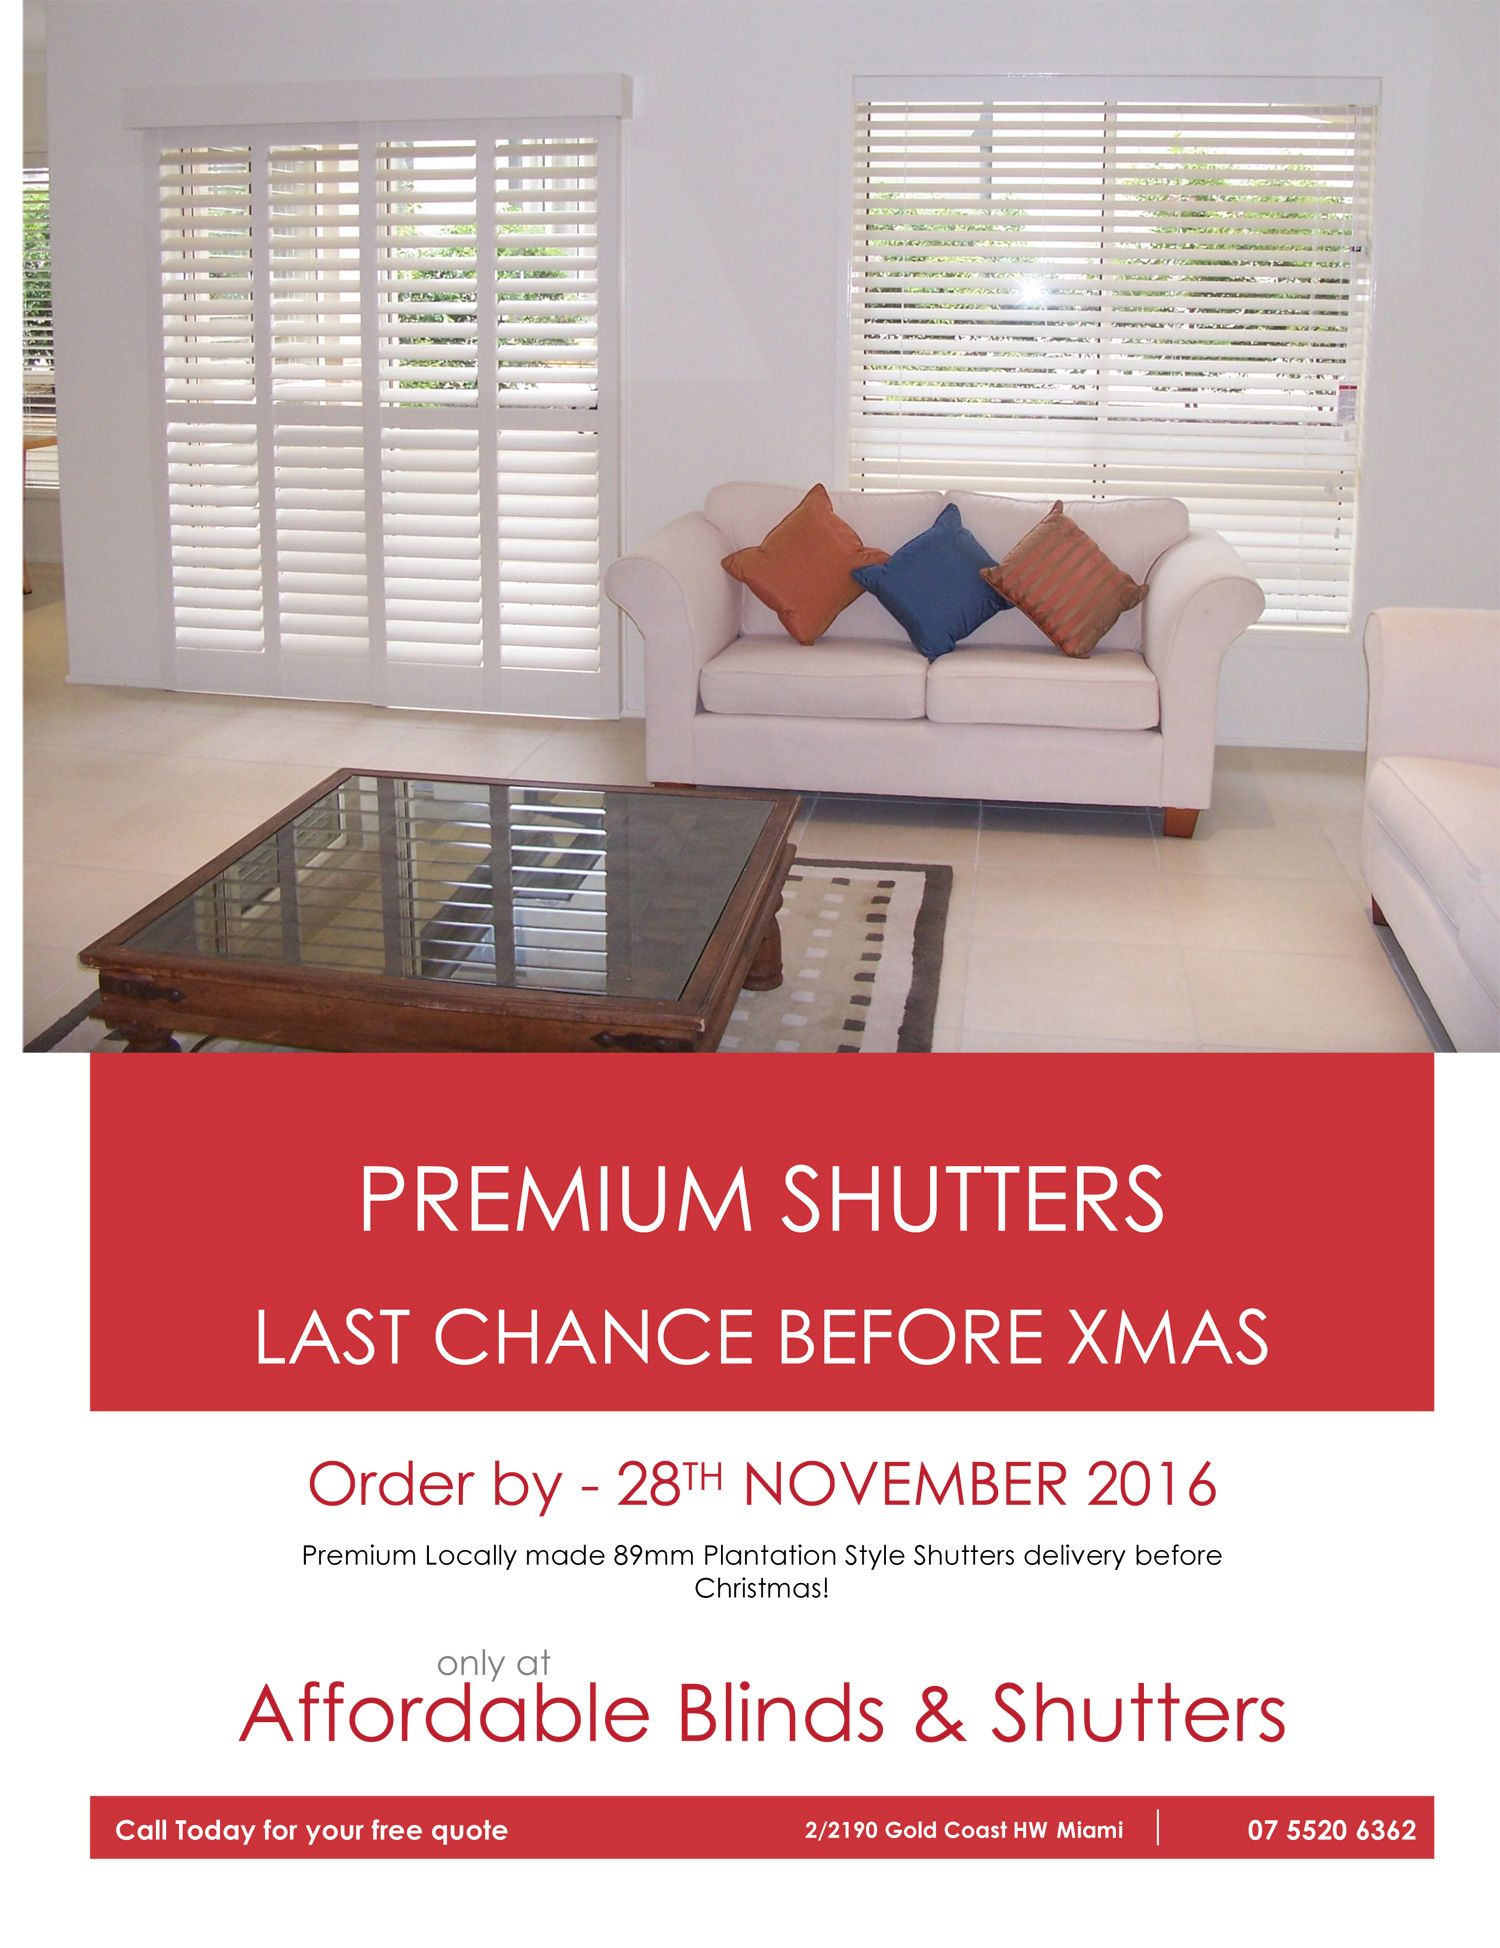 Pin By Affordable Blinds And Shutters On Affordable Blinds And